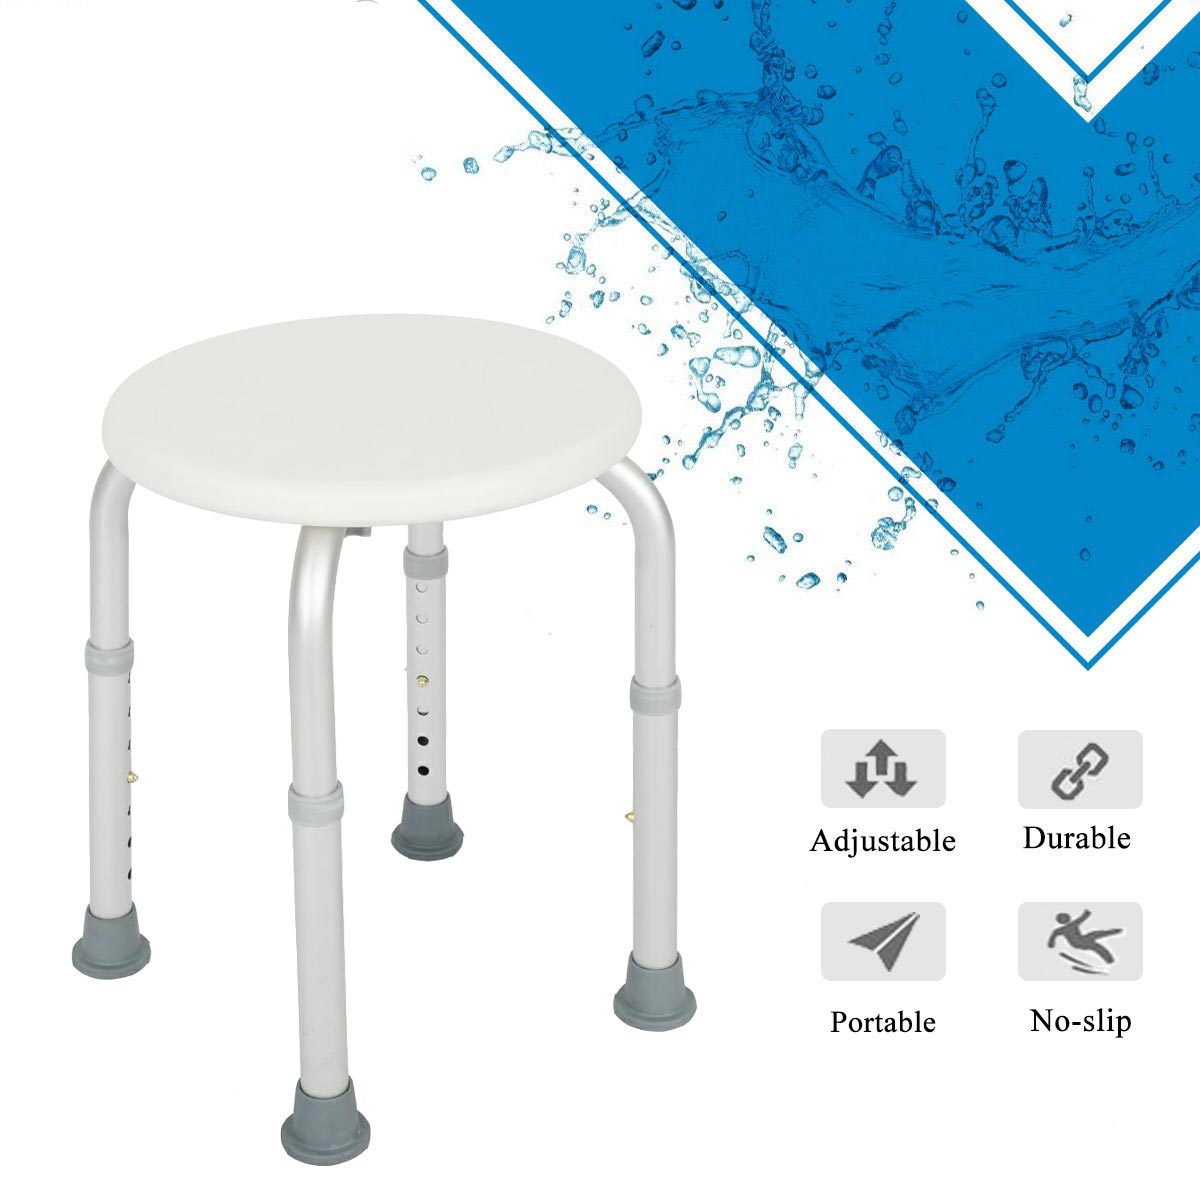 Cool Details About New Round Bath Shower Stool Seat 7 Levels Adjustable Height Medical Security Onthecornerstone Fun Painted Chair Ideas Images Onthecornerstoneorg